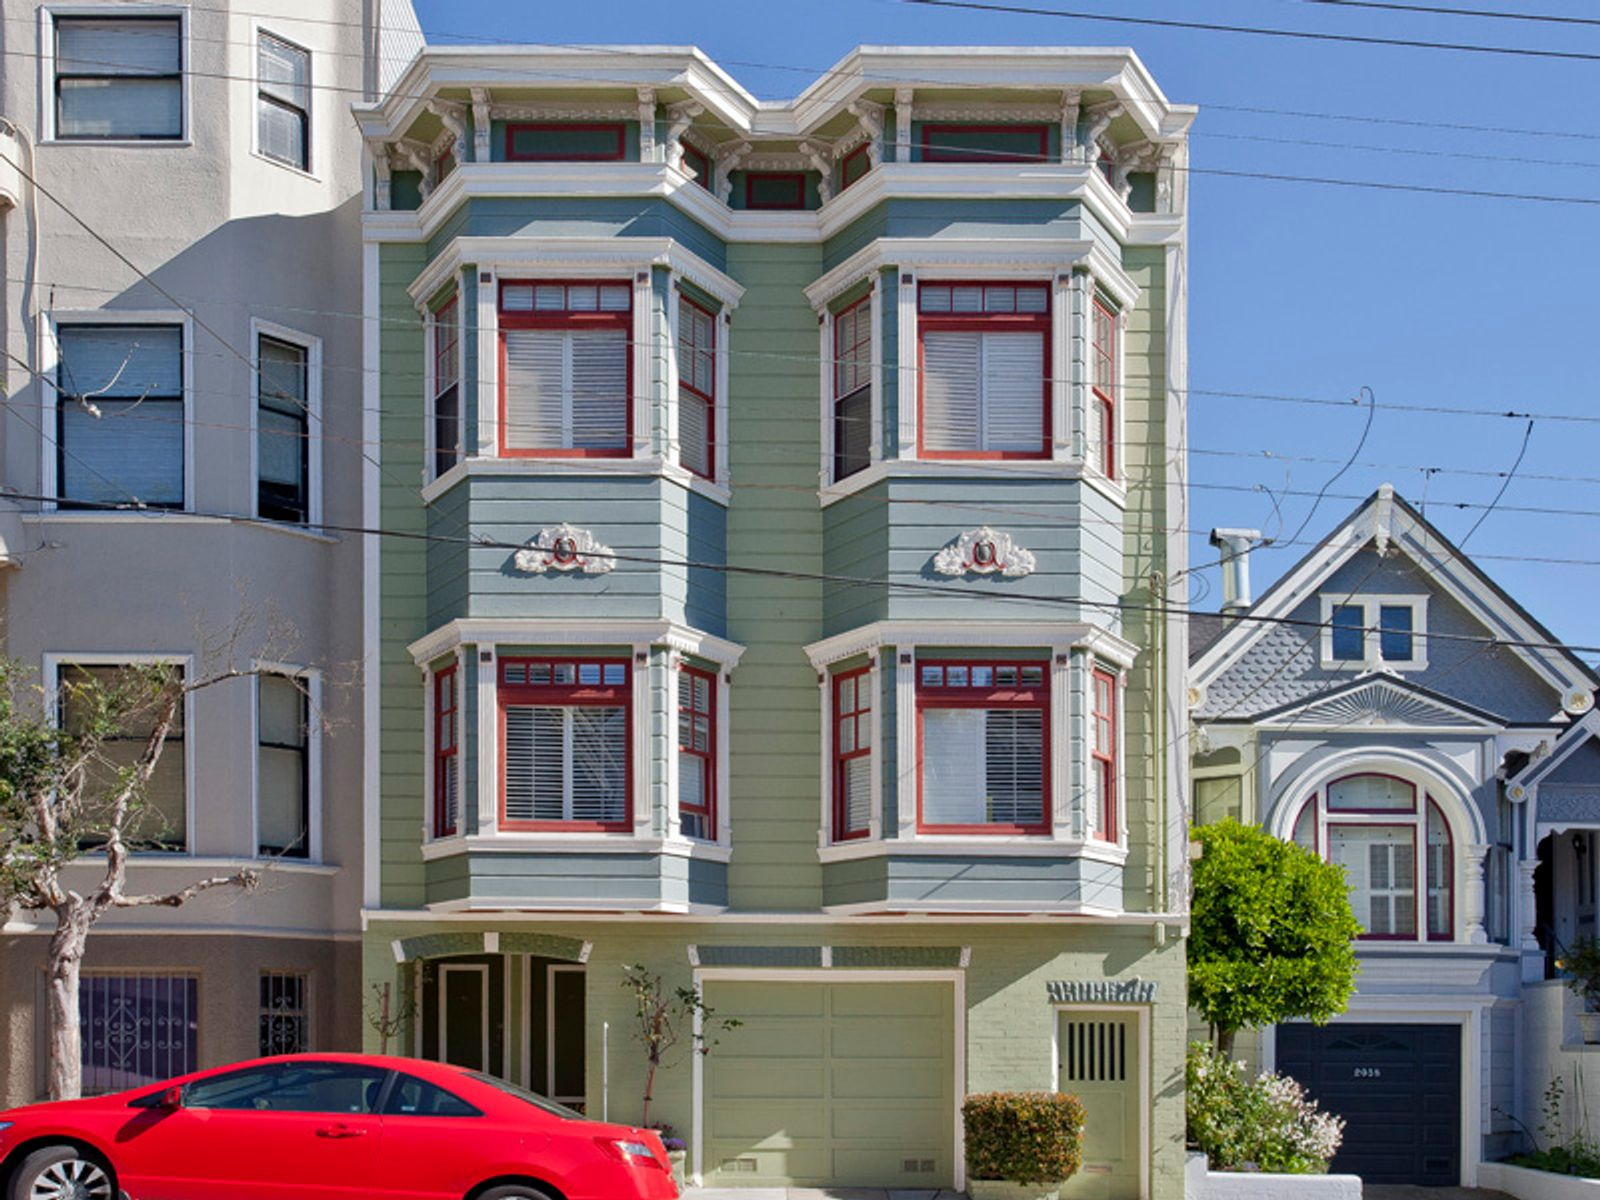 2046 Baker Charming Garden Home, San Francisco CA Condominium - San Francisco Real Estate